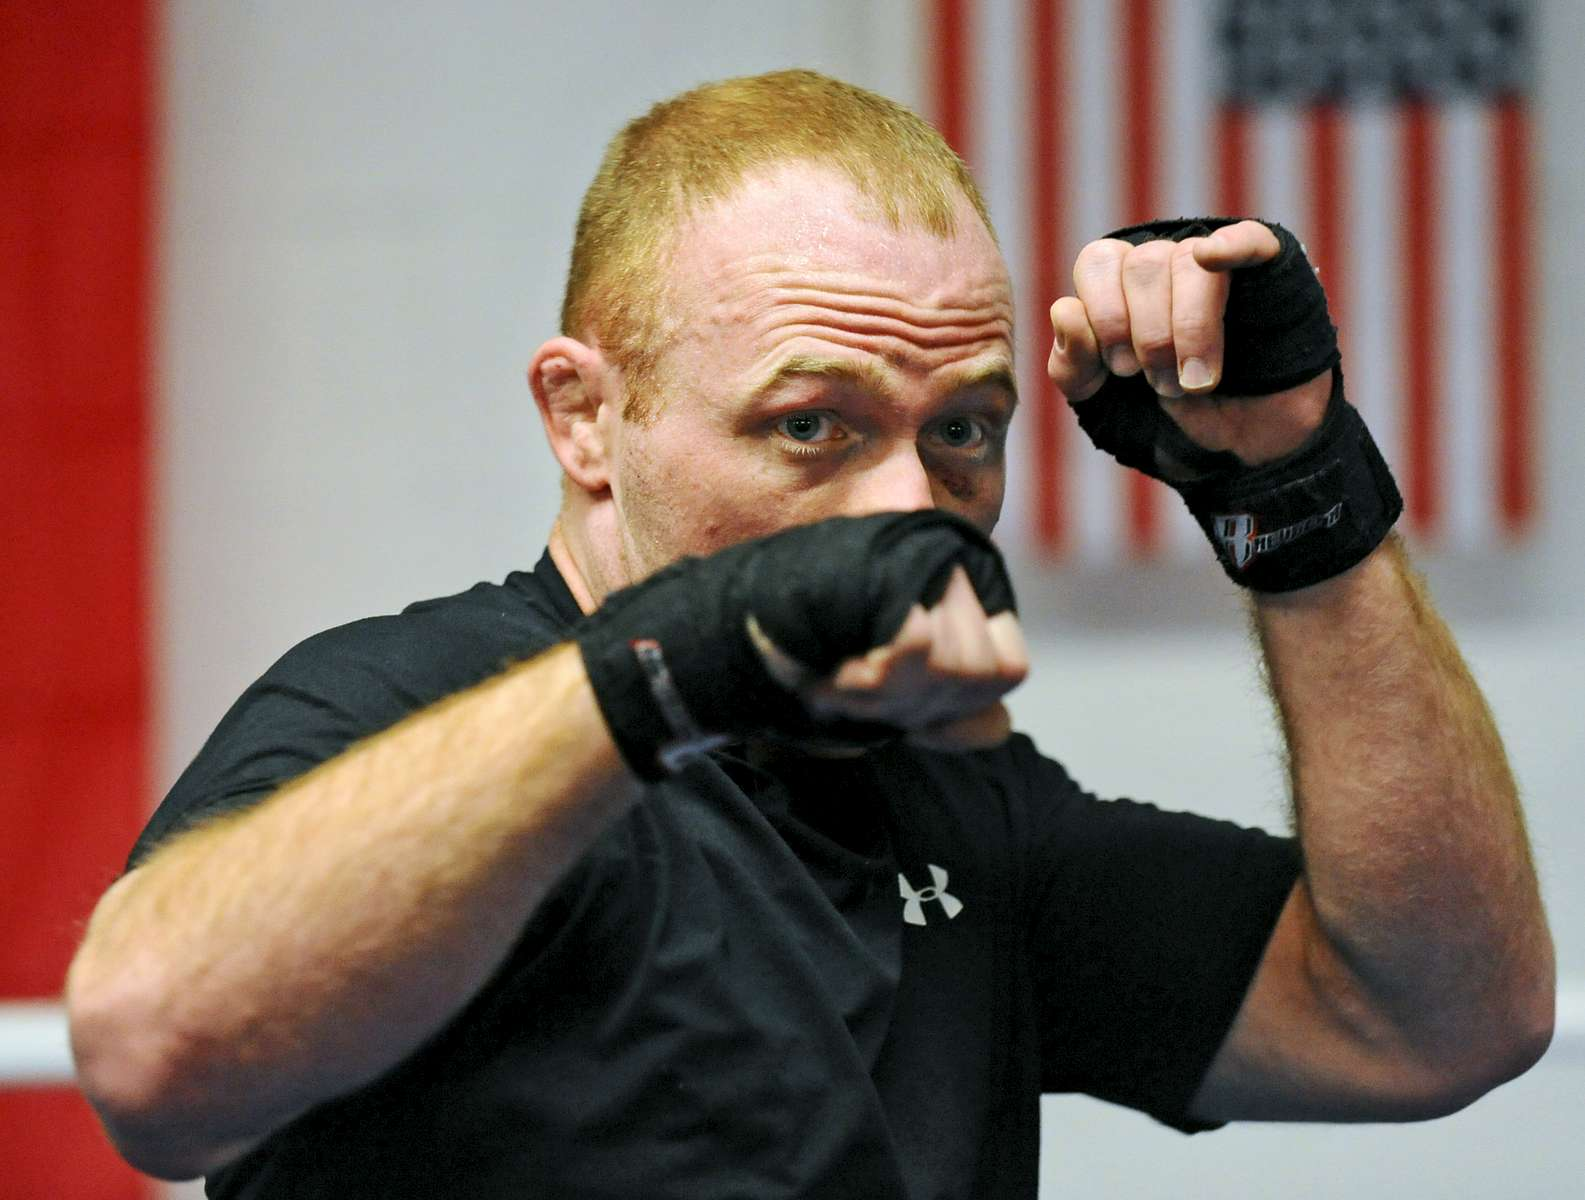 Worcester firefighter Evan Parker moonlights as a Mixed Martial Arts fighter.